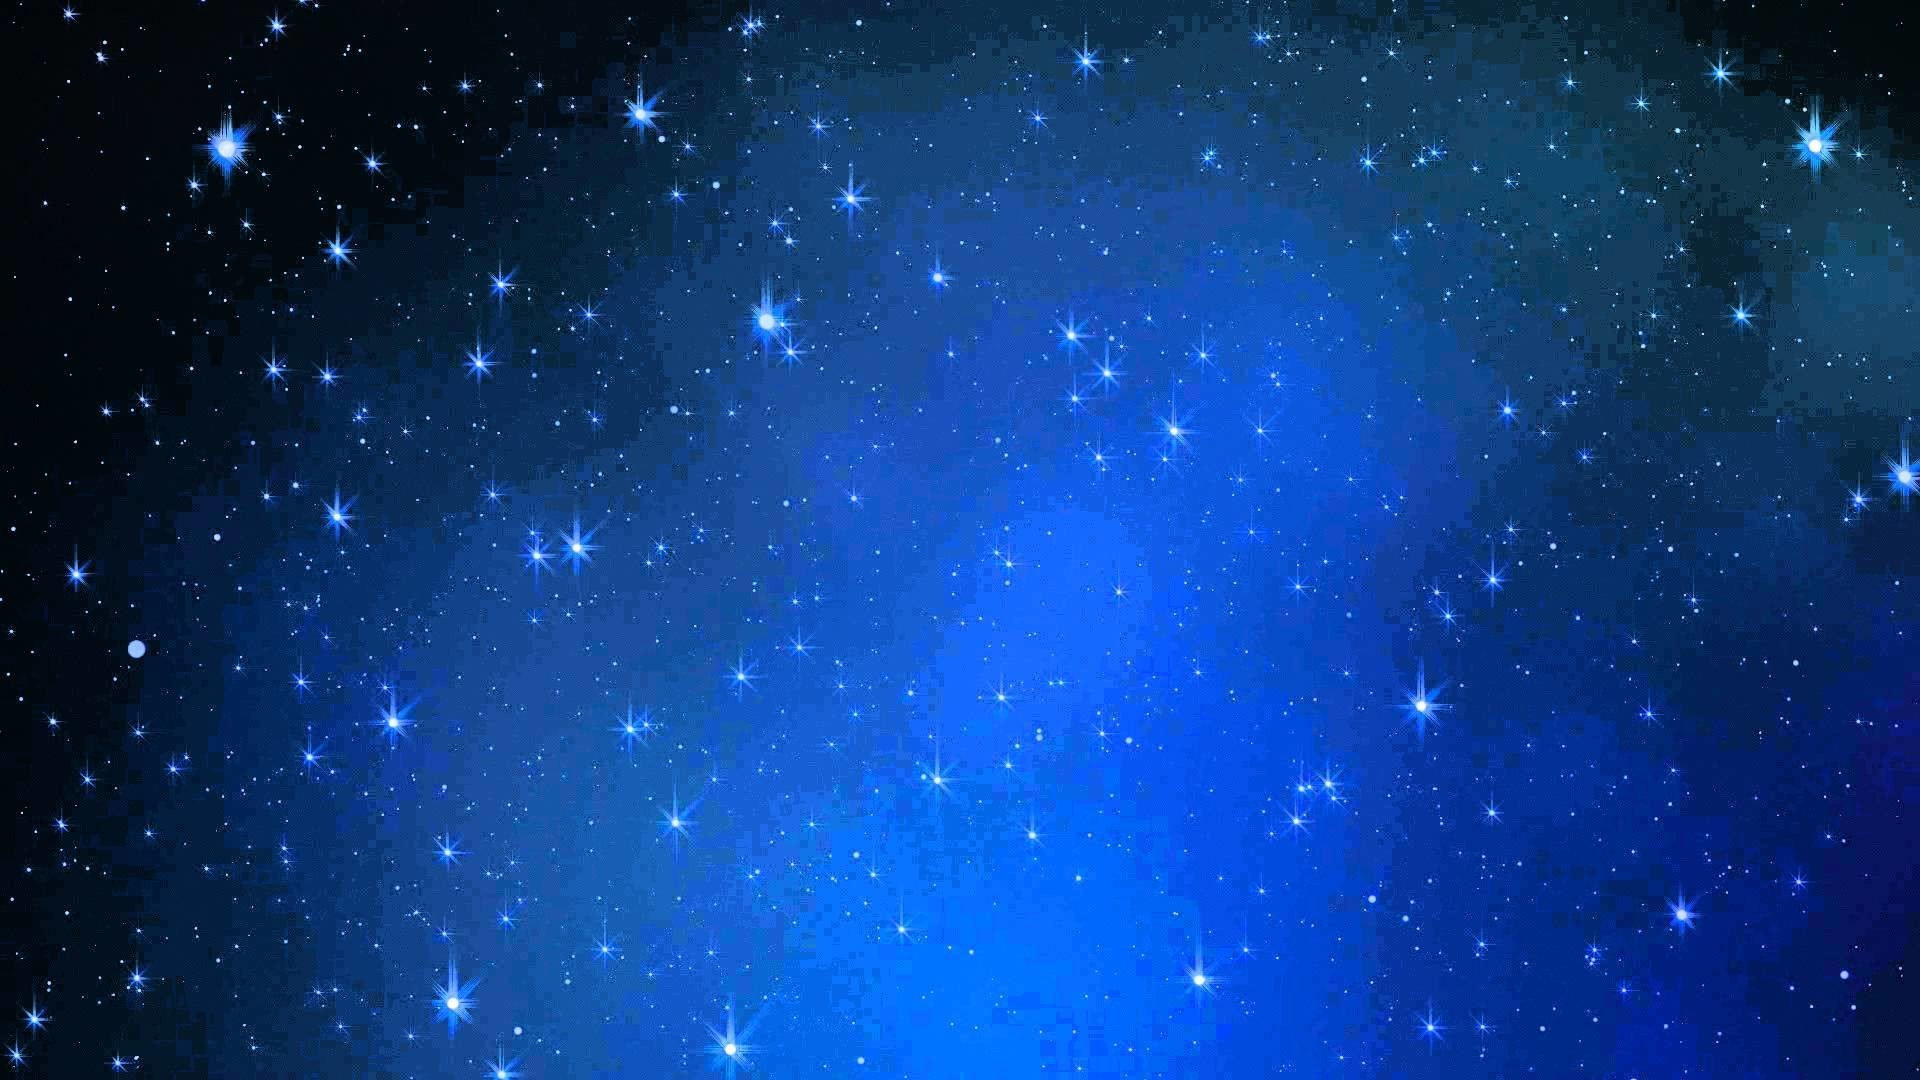 Animated stars backgrounds